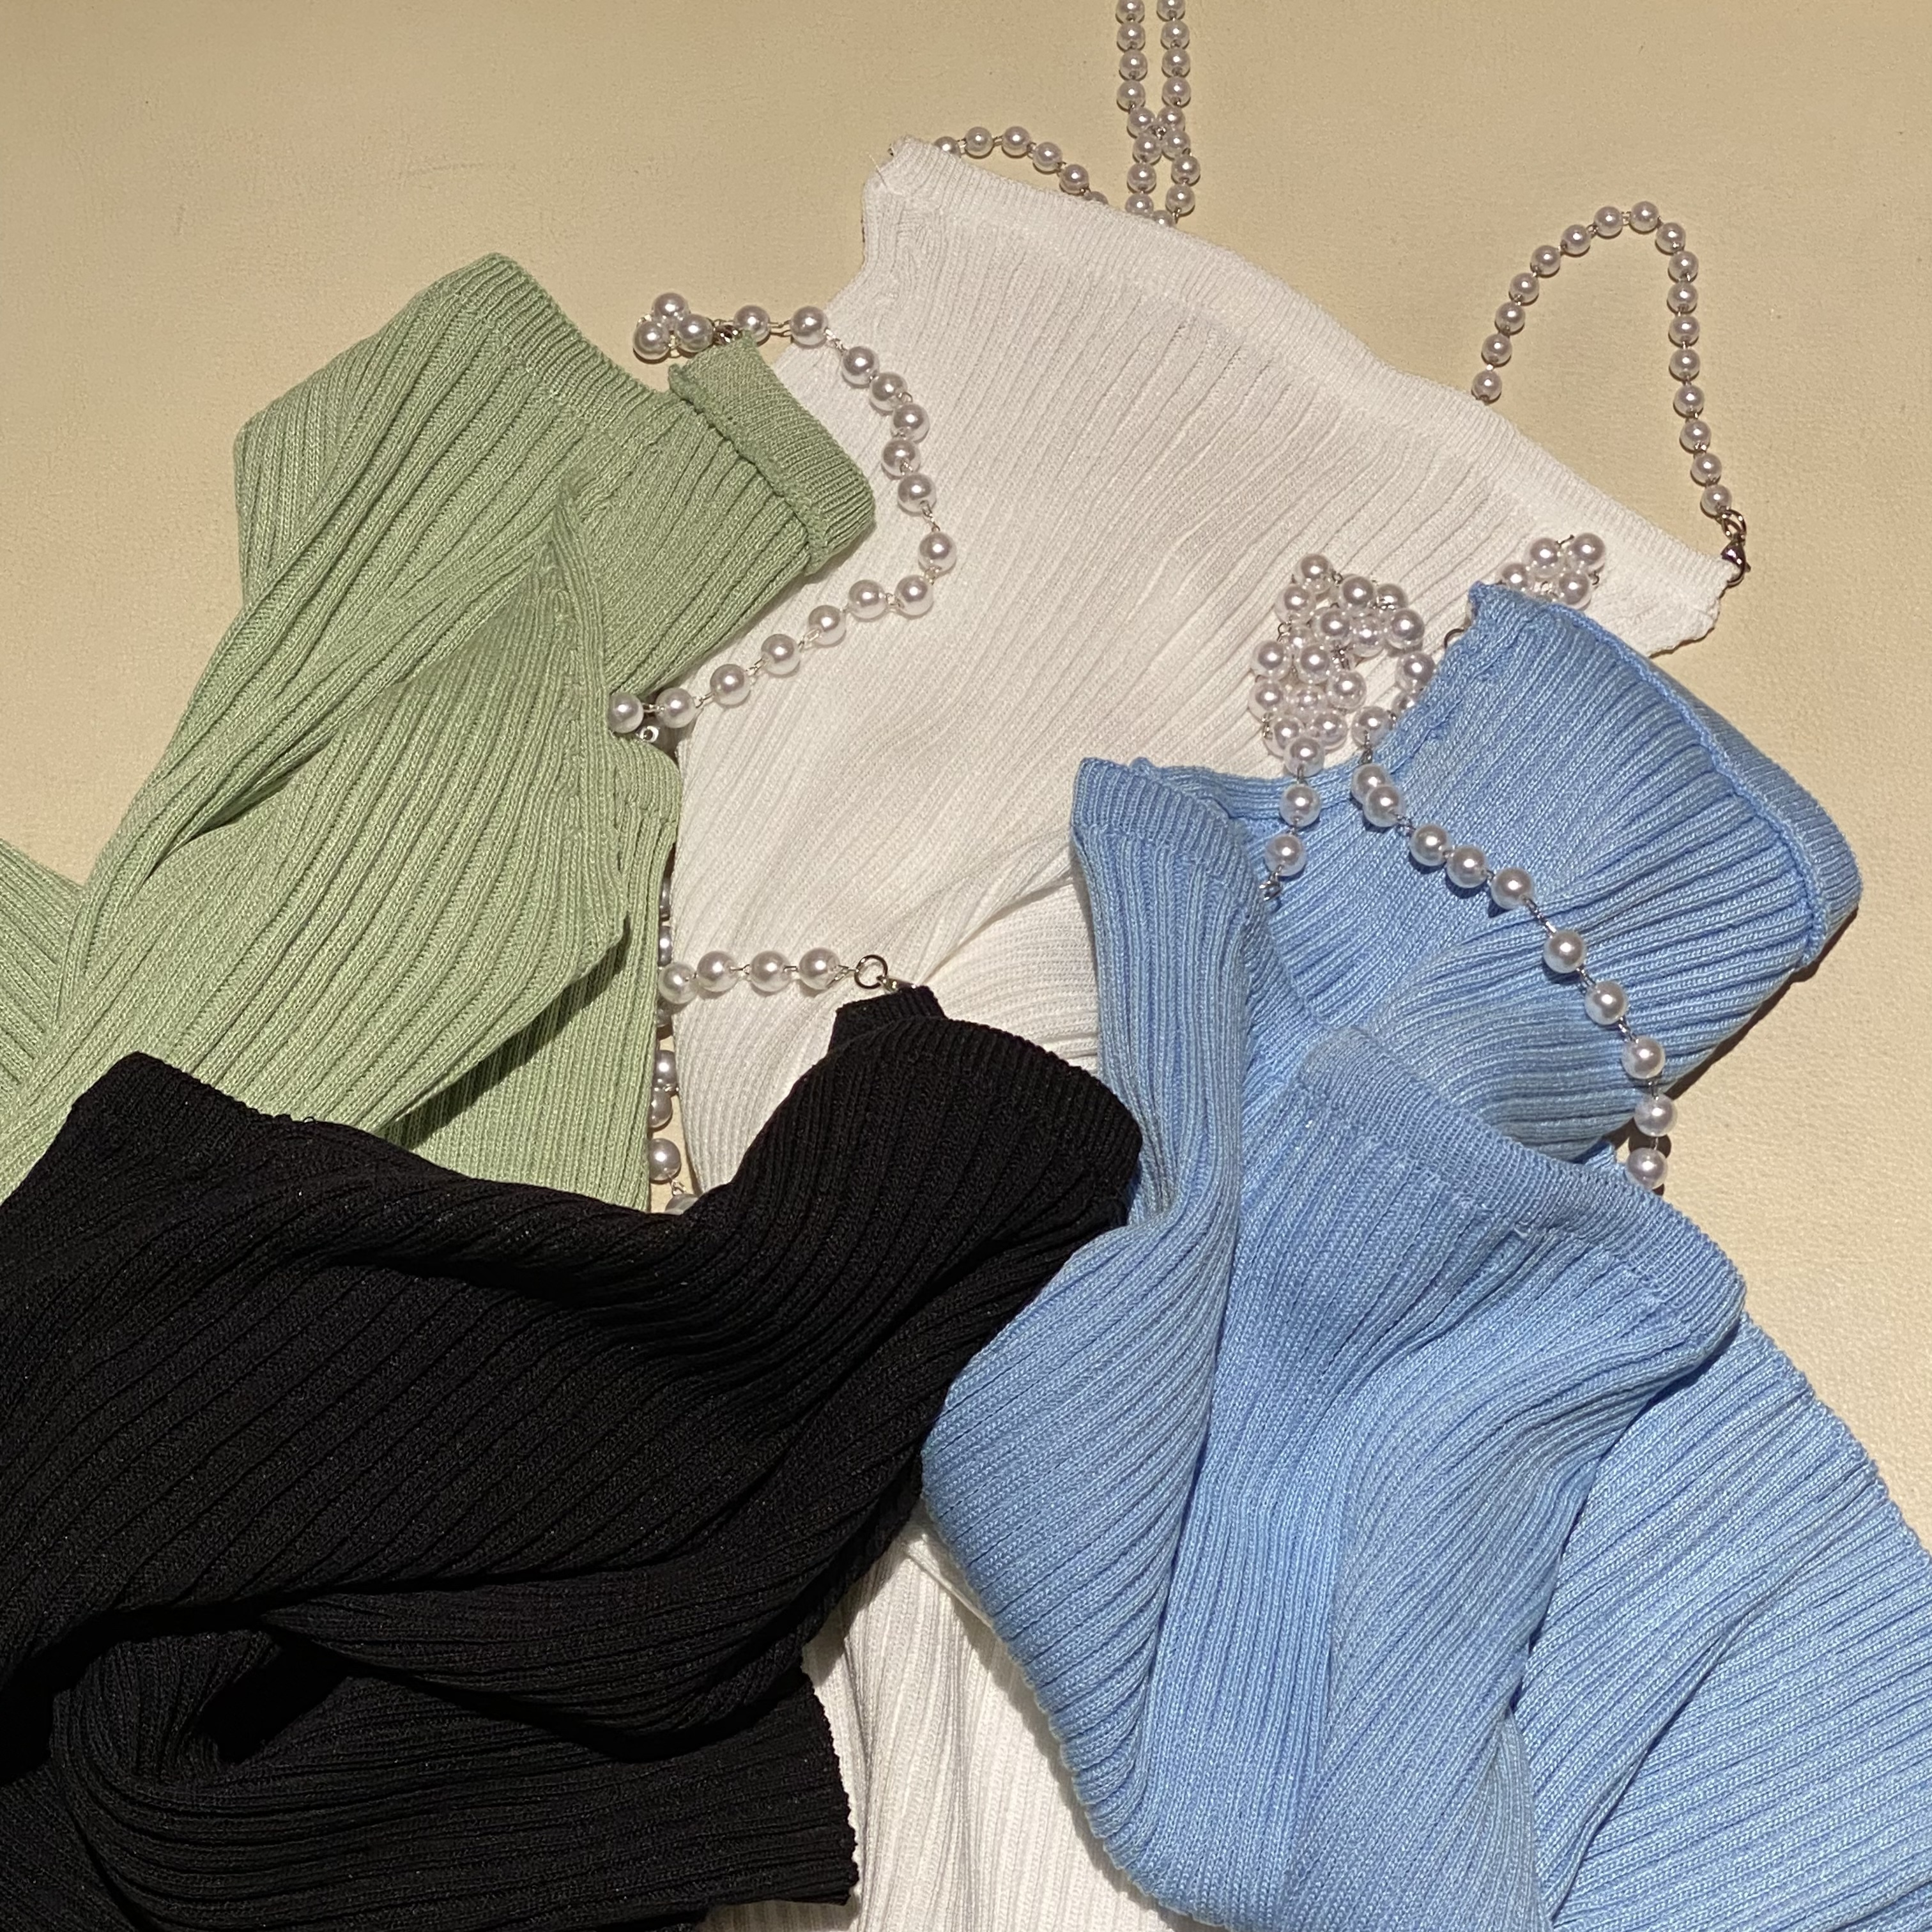 【Belle】pearl camisol / green